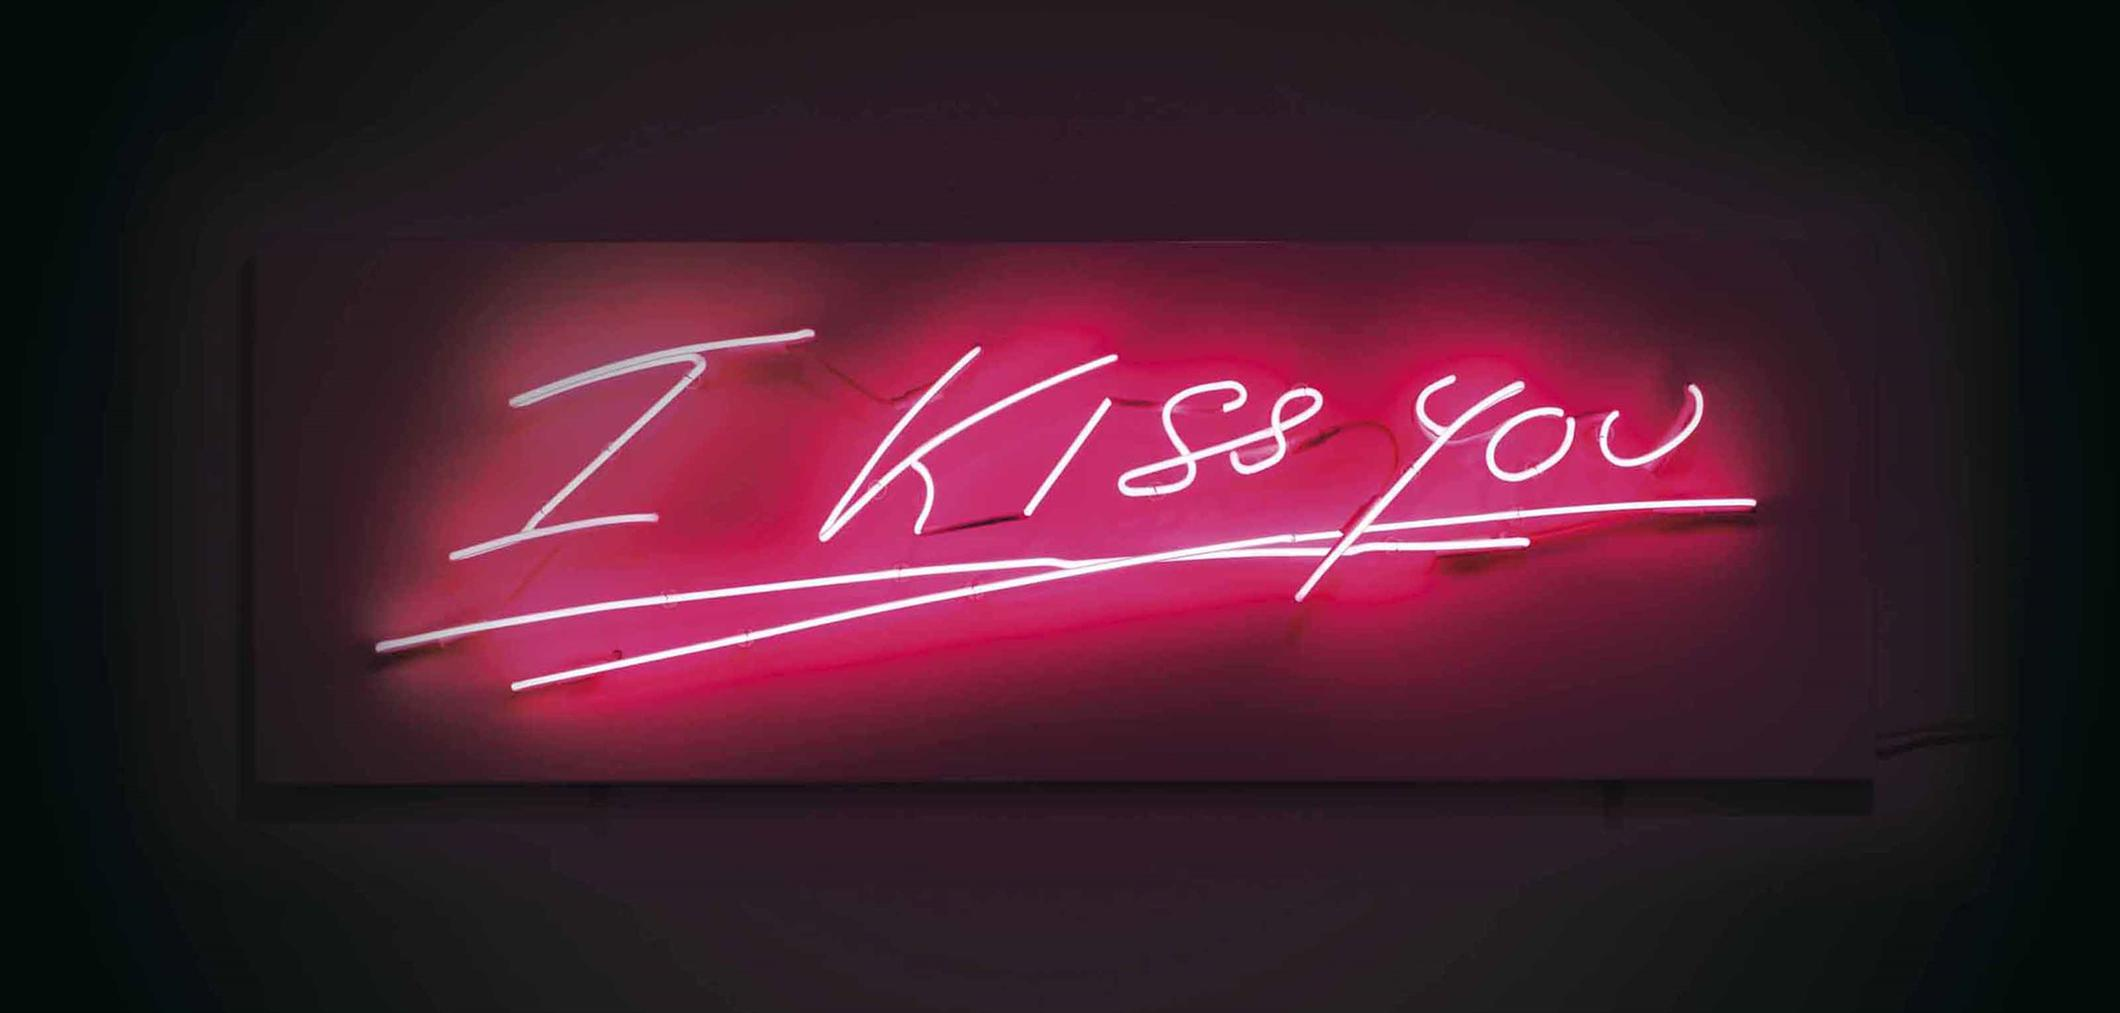 Tracey Emin-I Kiss You-2004